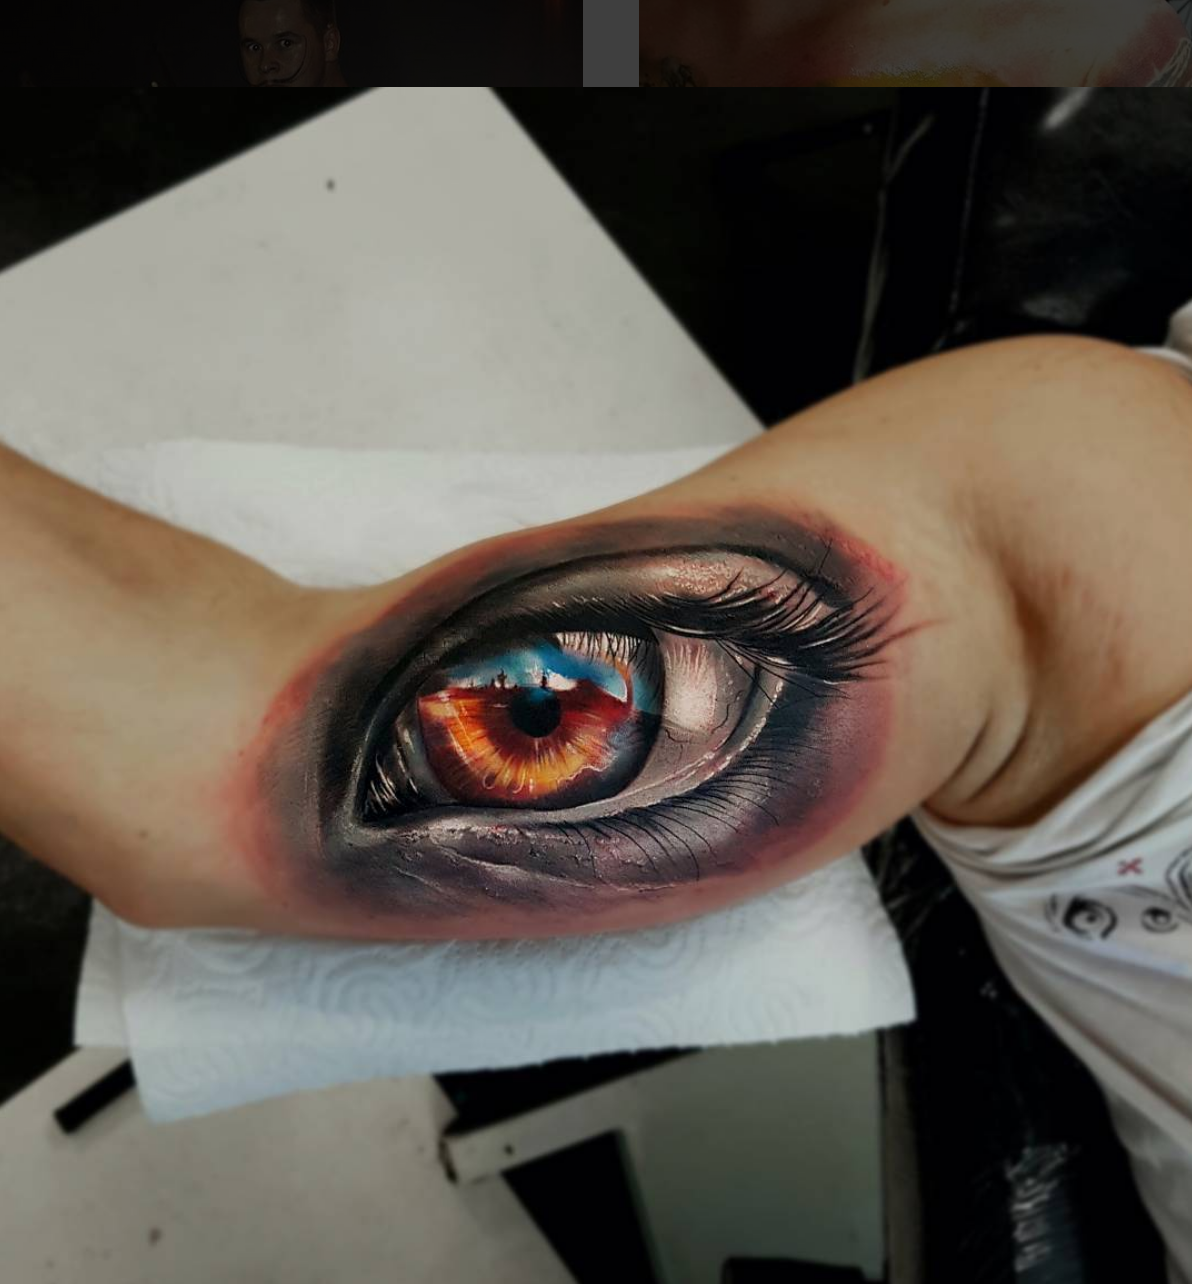 piink-tattoo-piercing-niuniek-tattoostudio-basel-auge